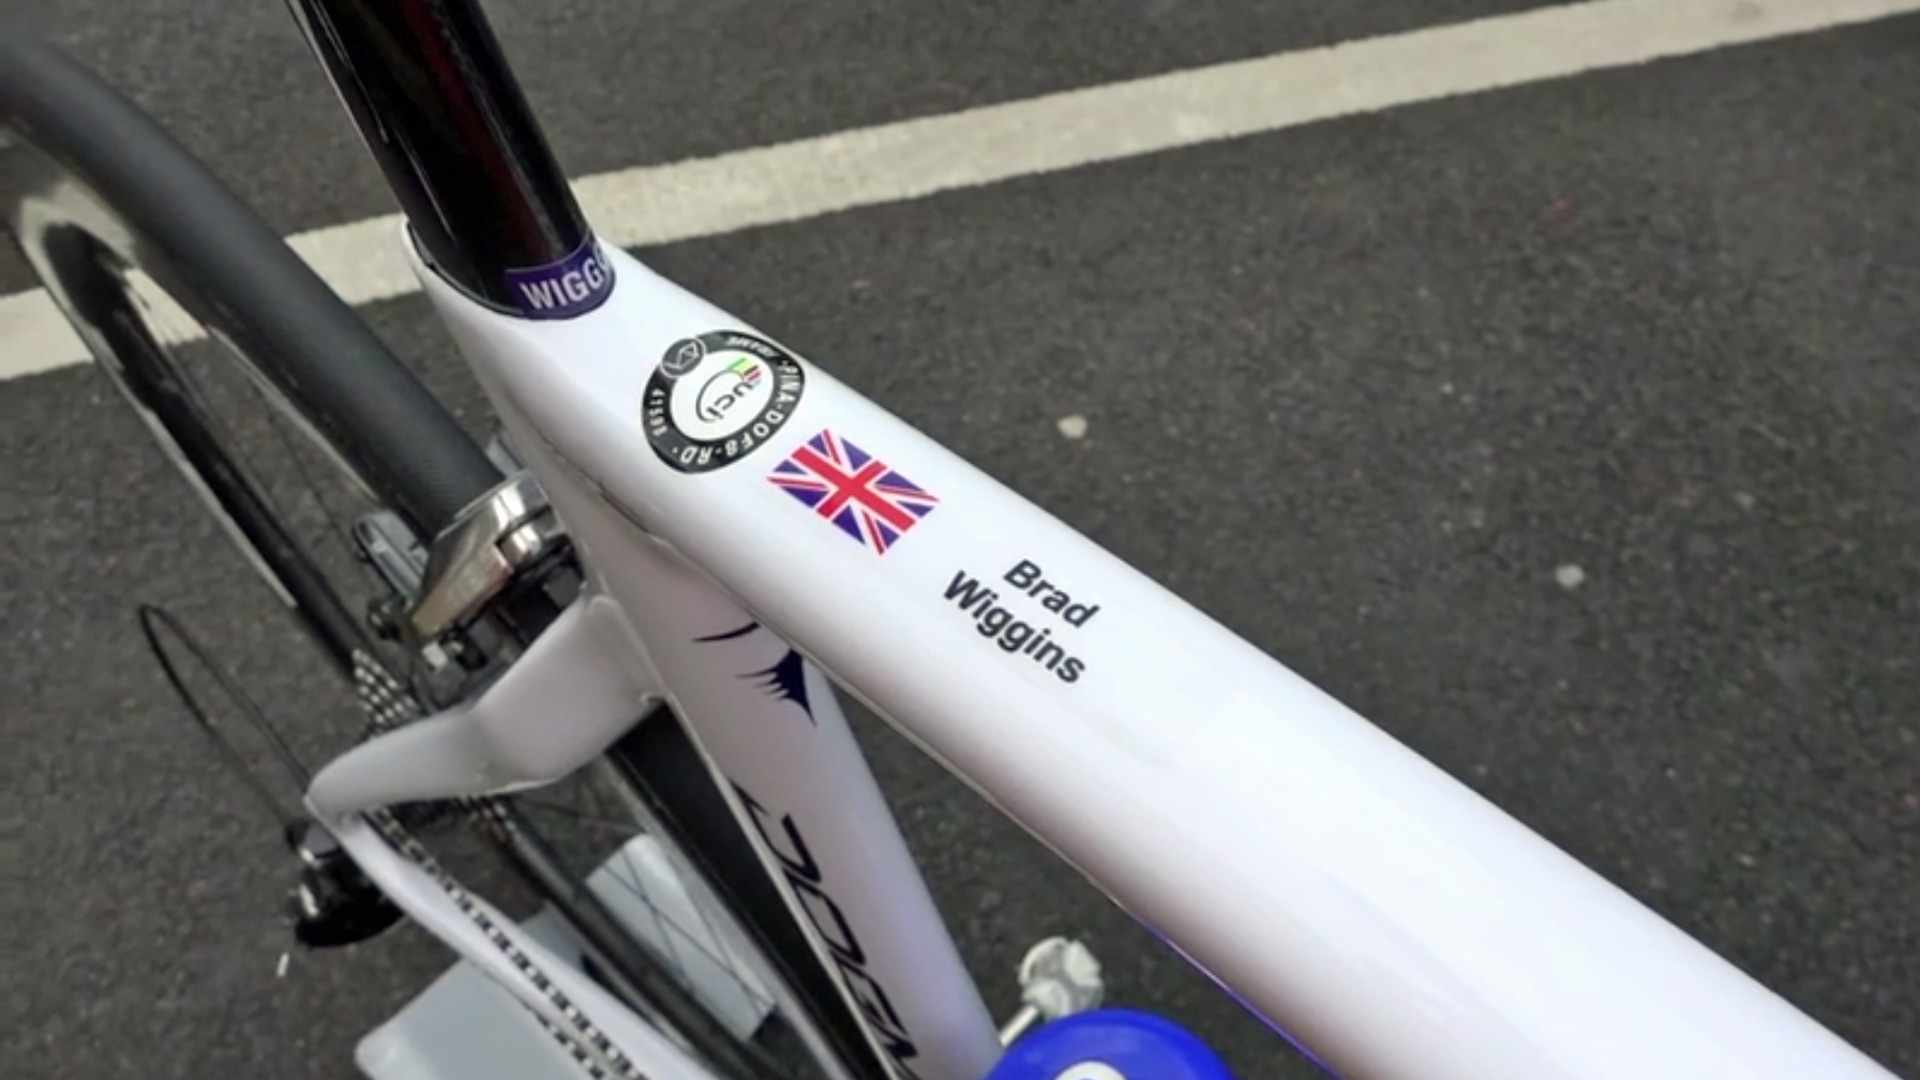 Bradley Wiggins' new Team WIGGINS Pinarello Dogma F8